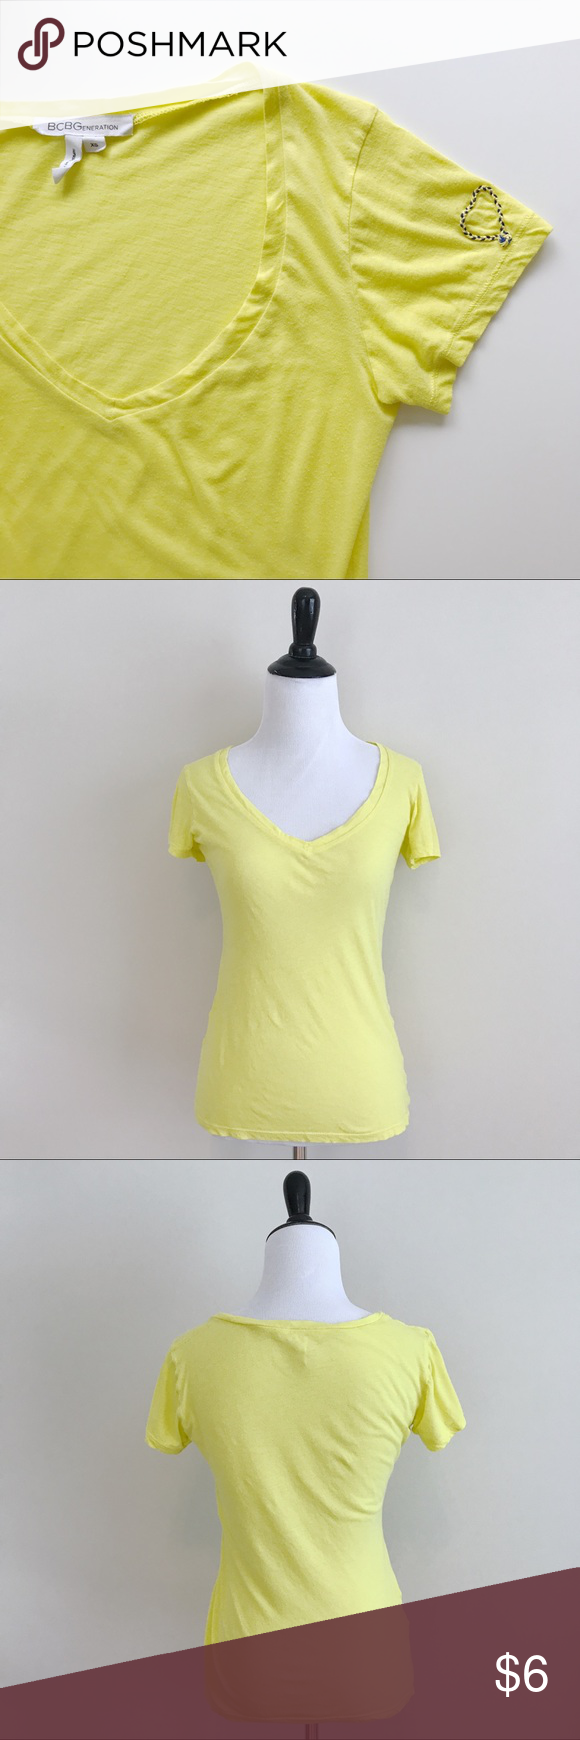 """❥ BCBGeneration Neon Yellow V-Neck Tee BCBGeneration v-Neck fitted tee. In great condition but the side seams are a bit off because I accidentally put in the washer 😂 hence the low price.   🔸Size/Color: XS/Neon yellow 🔸Condition: Great, but side seams are off 🔸Bust 15.5"""", length 23"""" measured flat 🔹Instagram: Missoh_J BCBGeneration Tops Tees - Short Sleeve"""